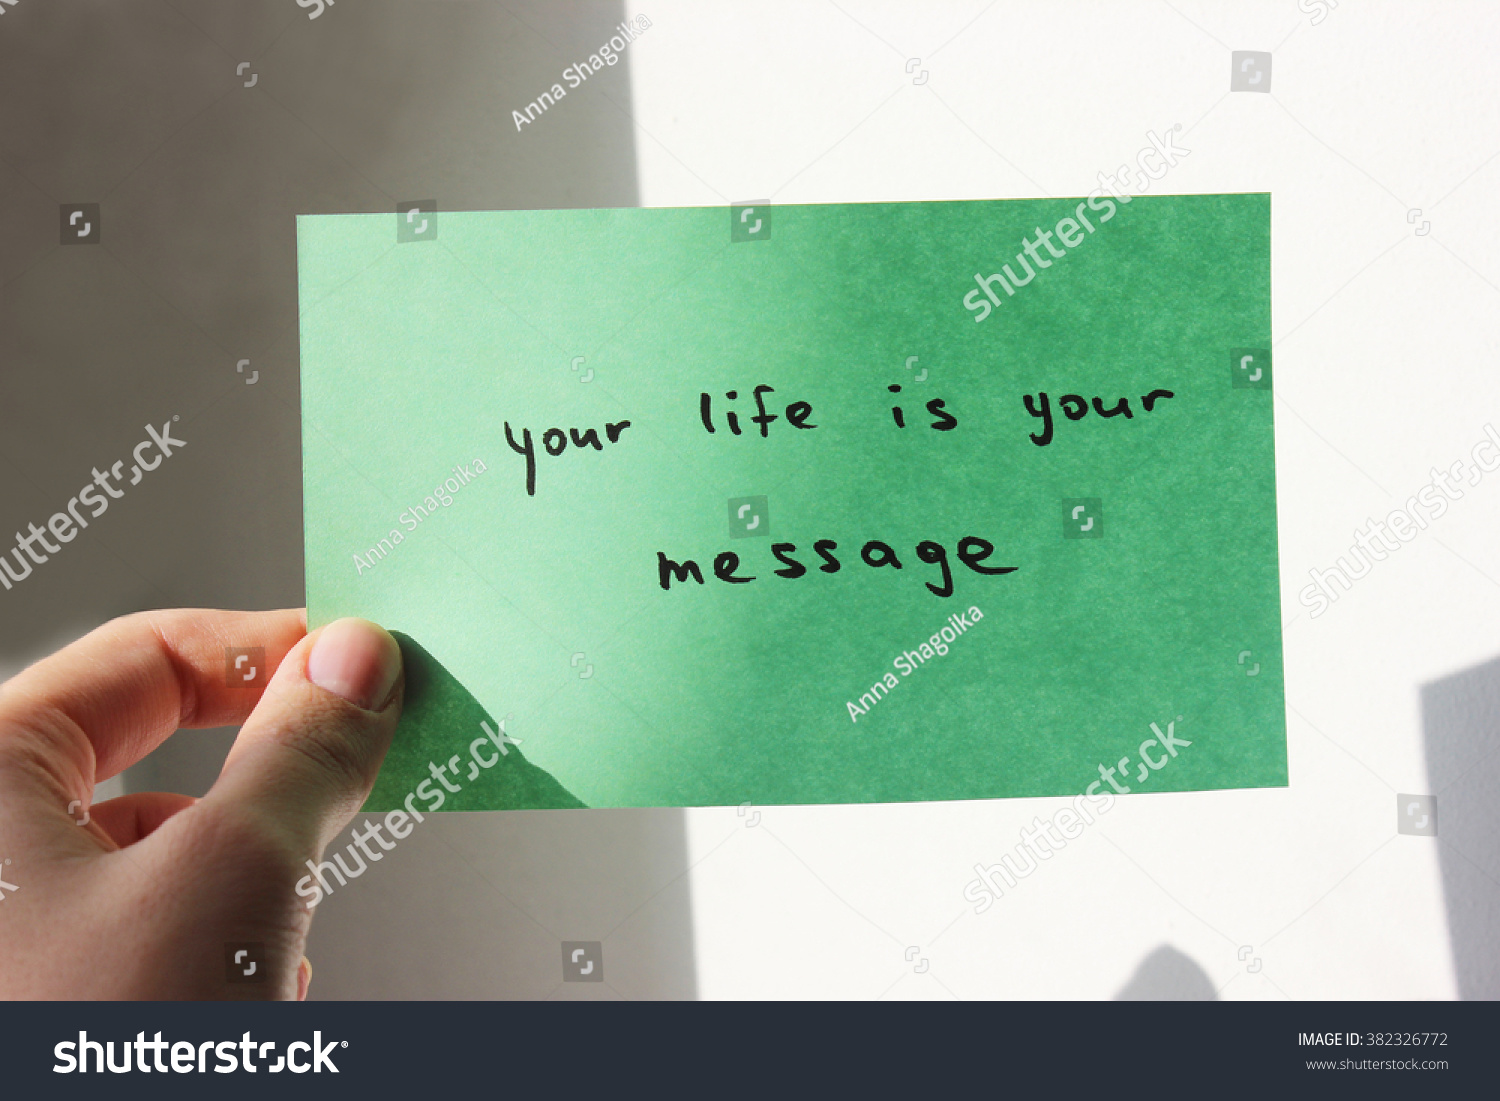 sketches philosophy your life your message stock photo 382326772 sketches or philosophy your life is your message message smart people be